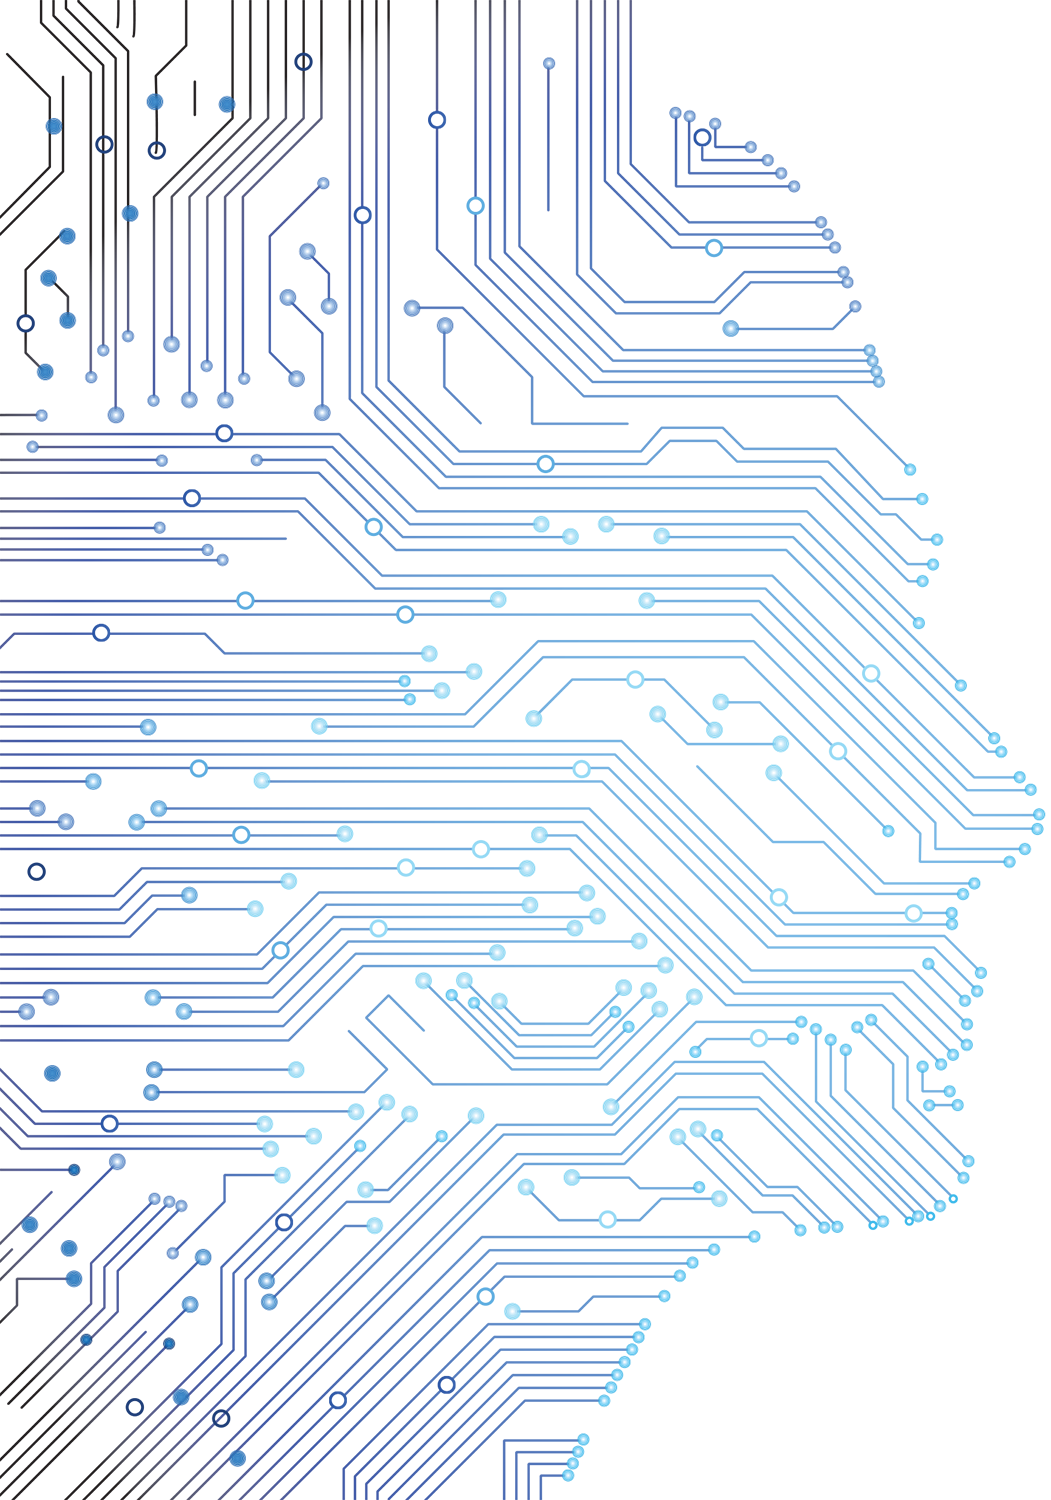 Circuit Board Vector At Free For Personal Use Photo Of Abstract Blue Background With High Tech 1051x1500 Collection Download On Ubisafe